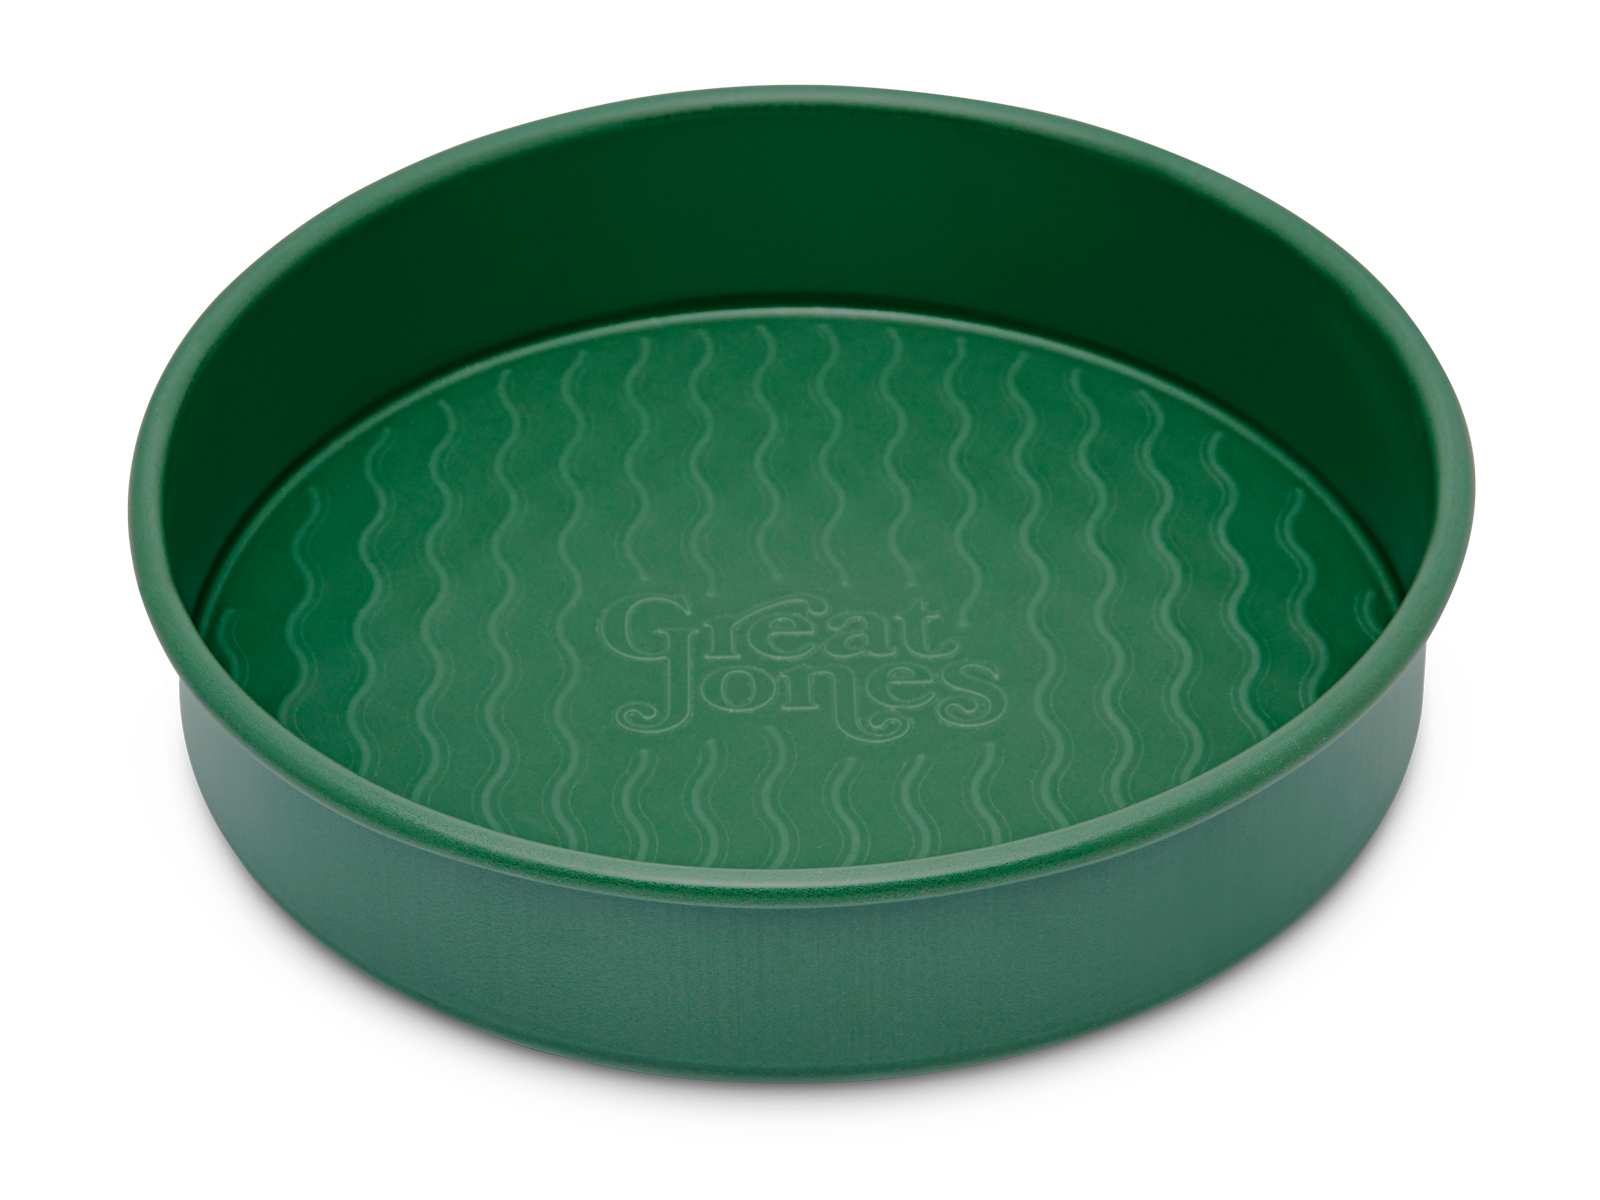 Great Jones cake pan